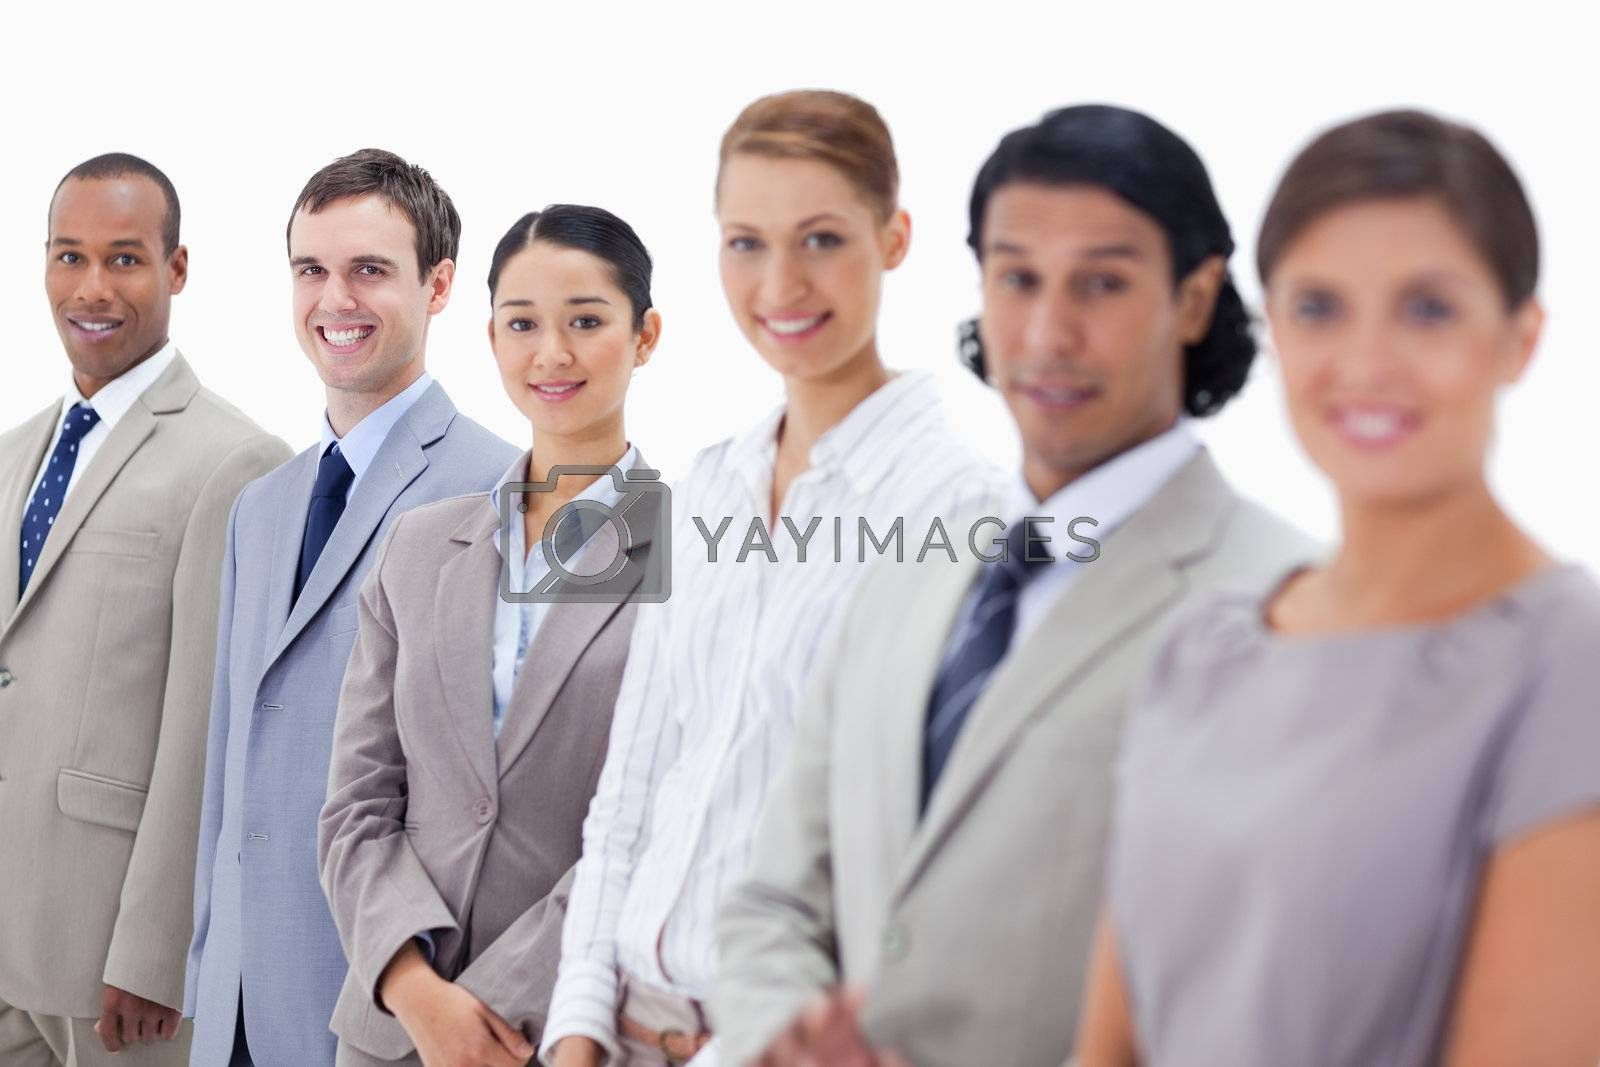 Close-up of business people smiling and looking straight with focus on the last three people